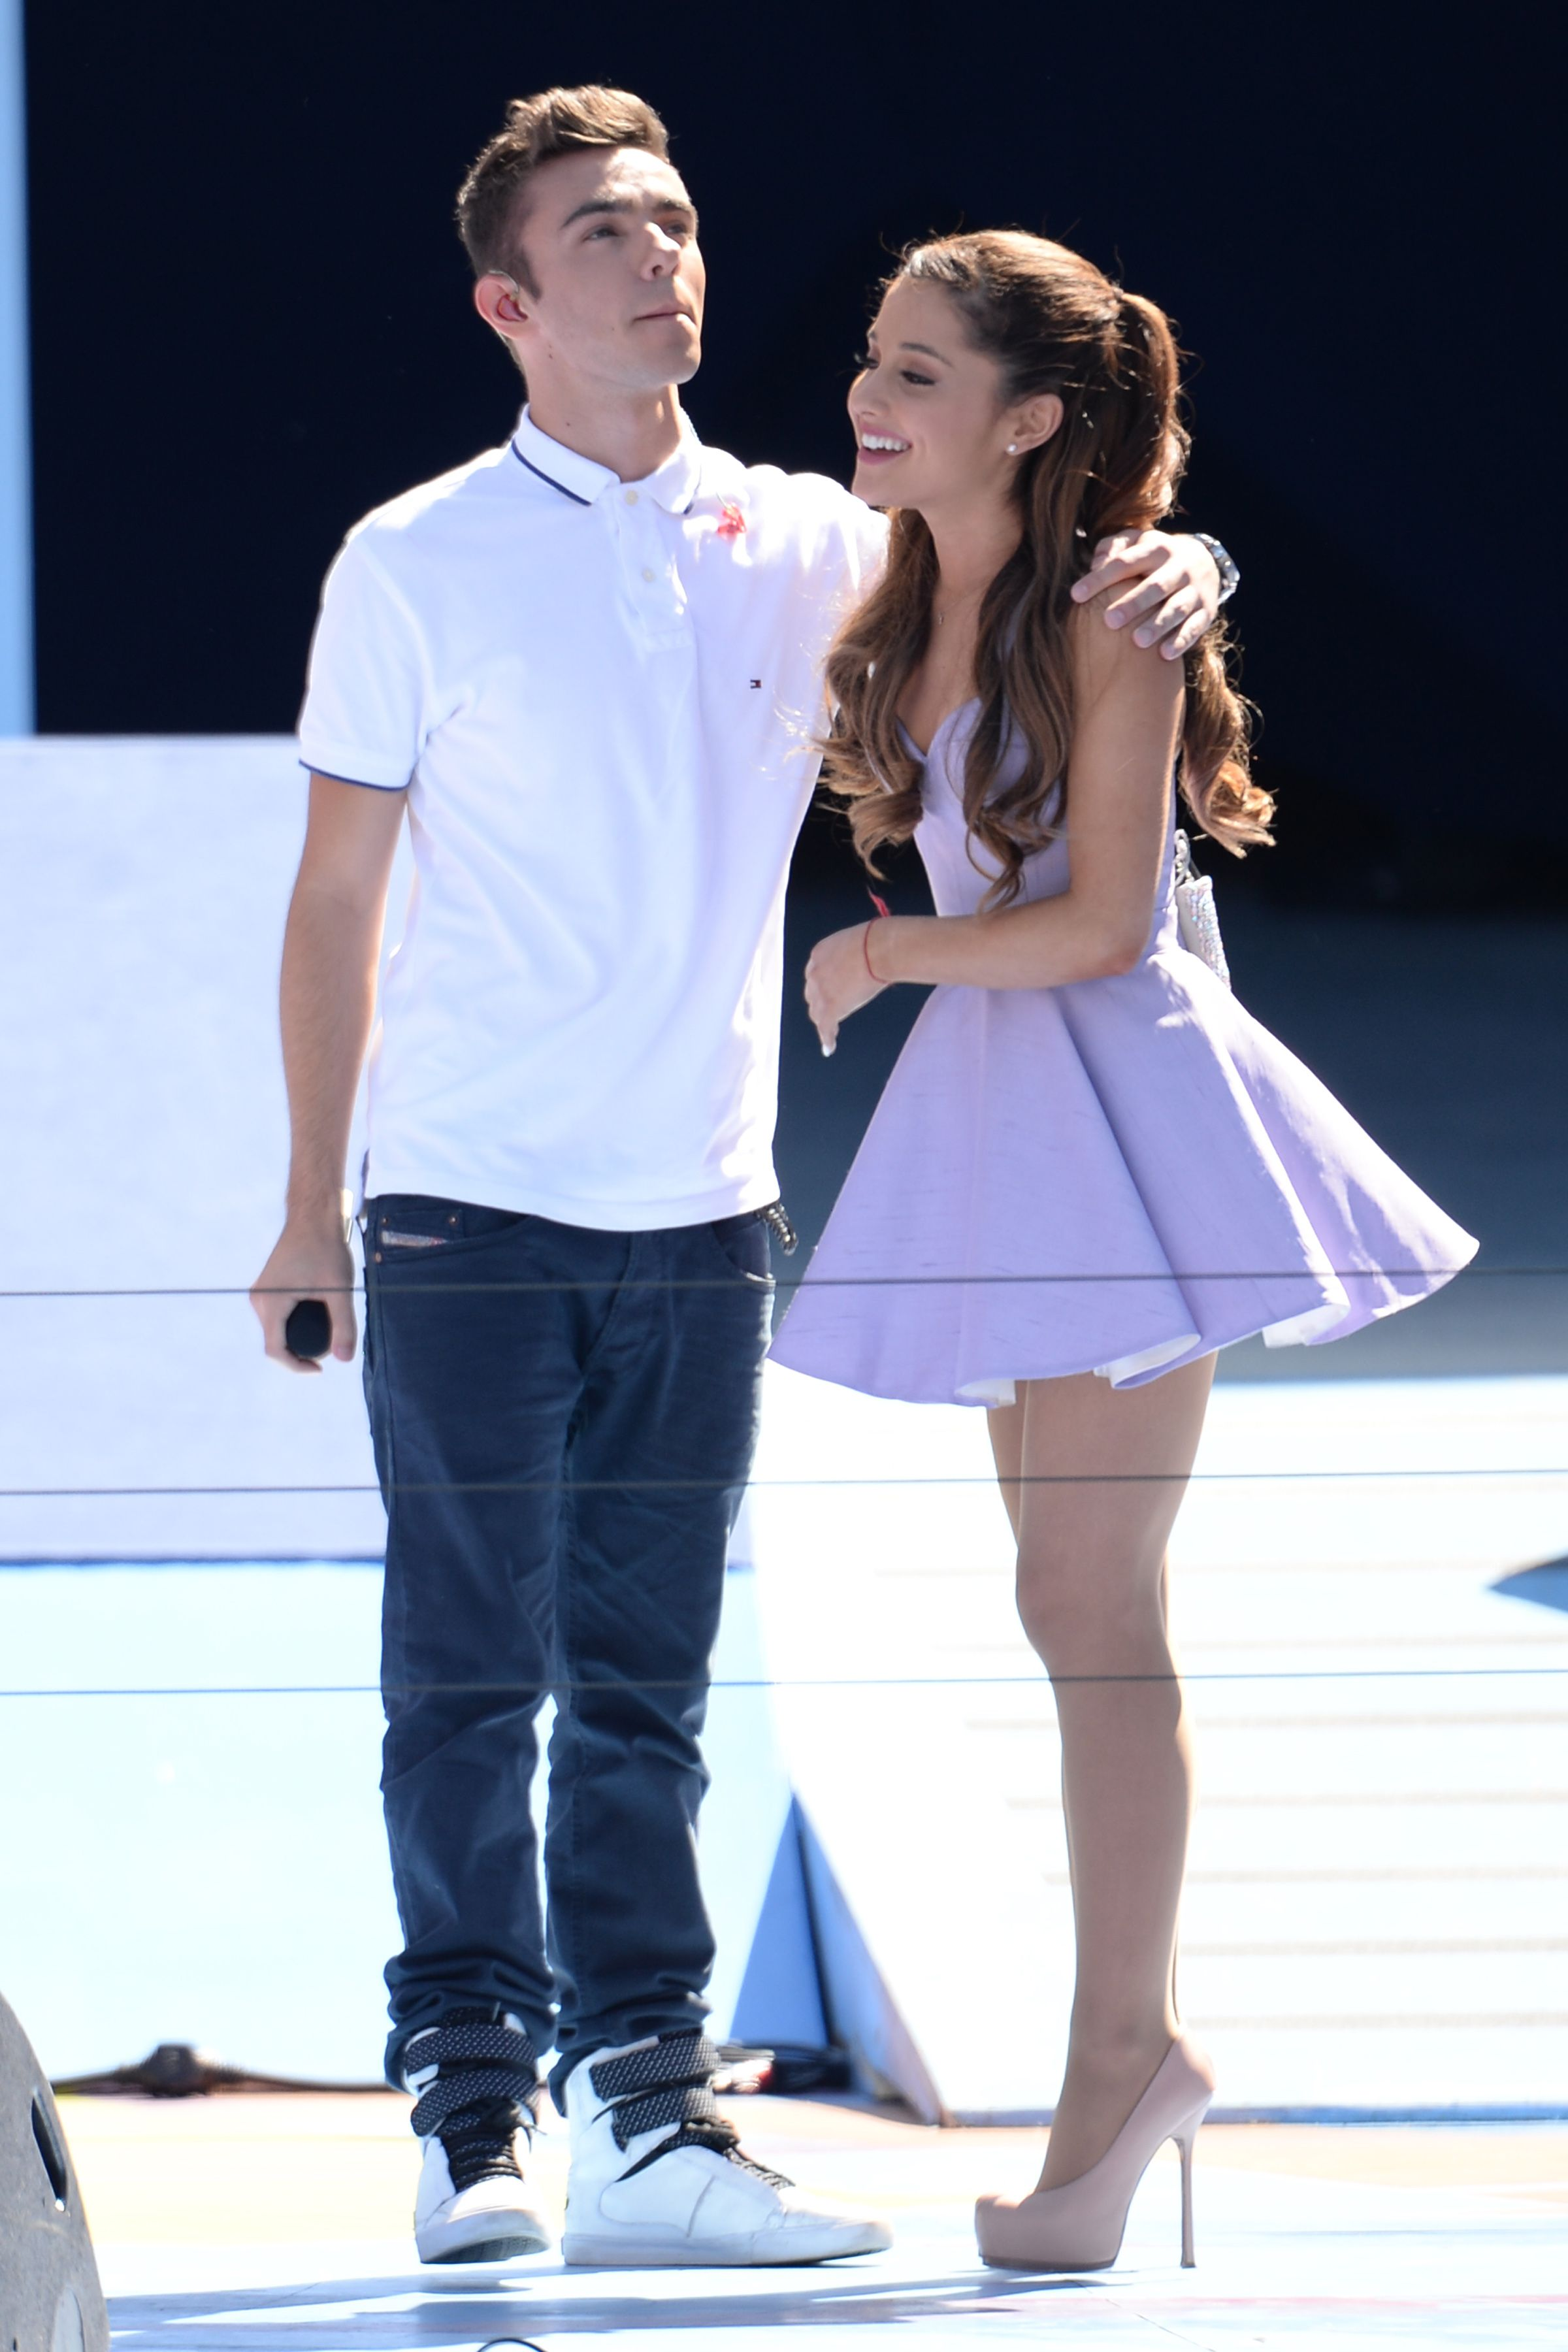 Ariana grande dating guy from the wanted